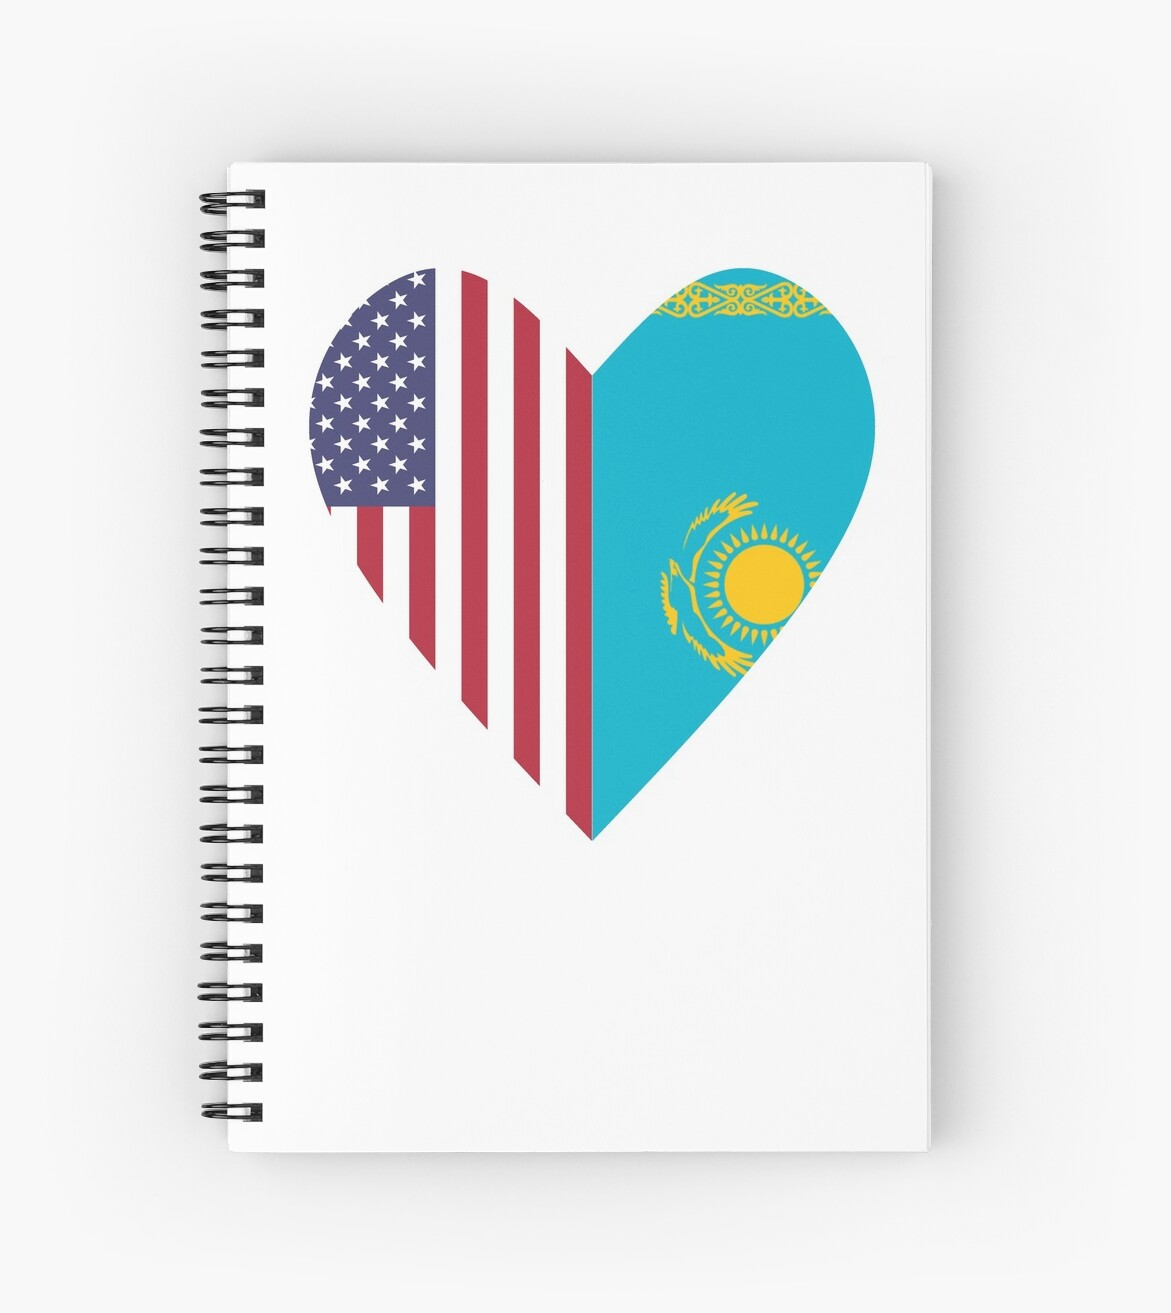 Half Kazakhstan Flag Half USA Flag Love Heart by TrevelyanPrints